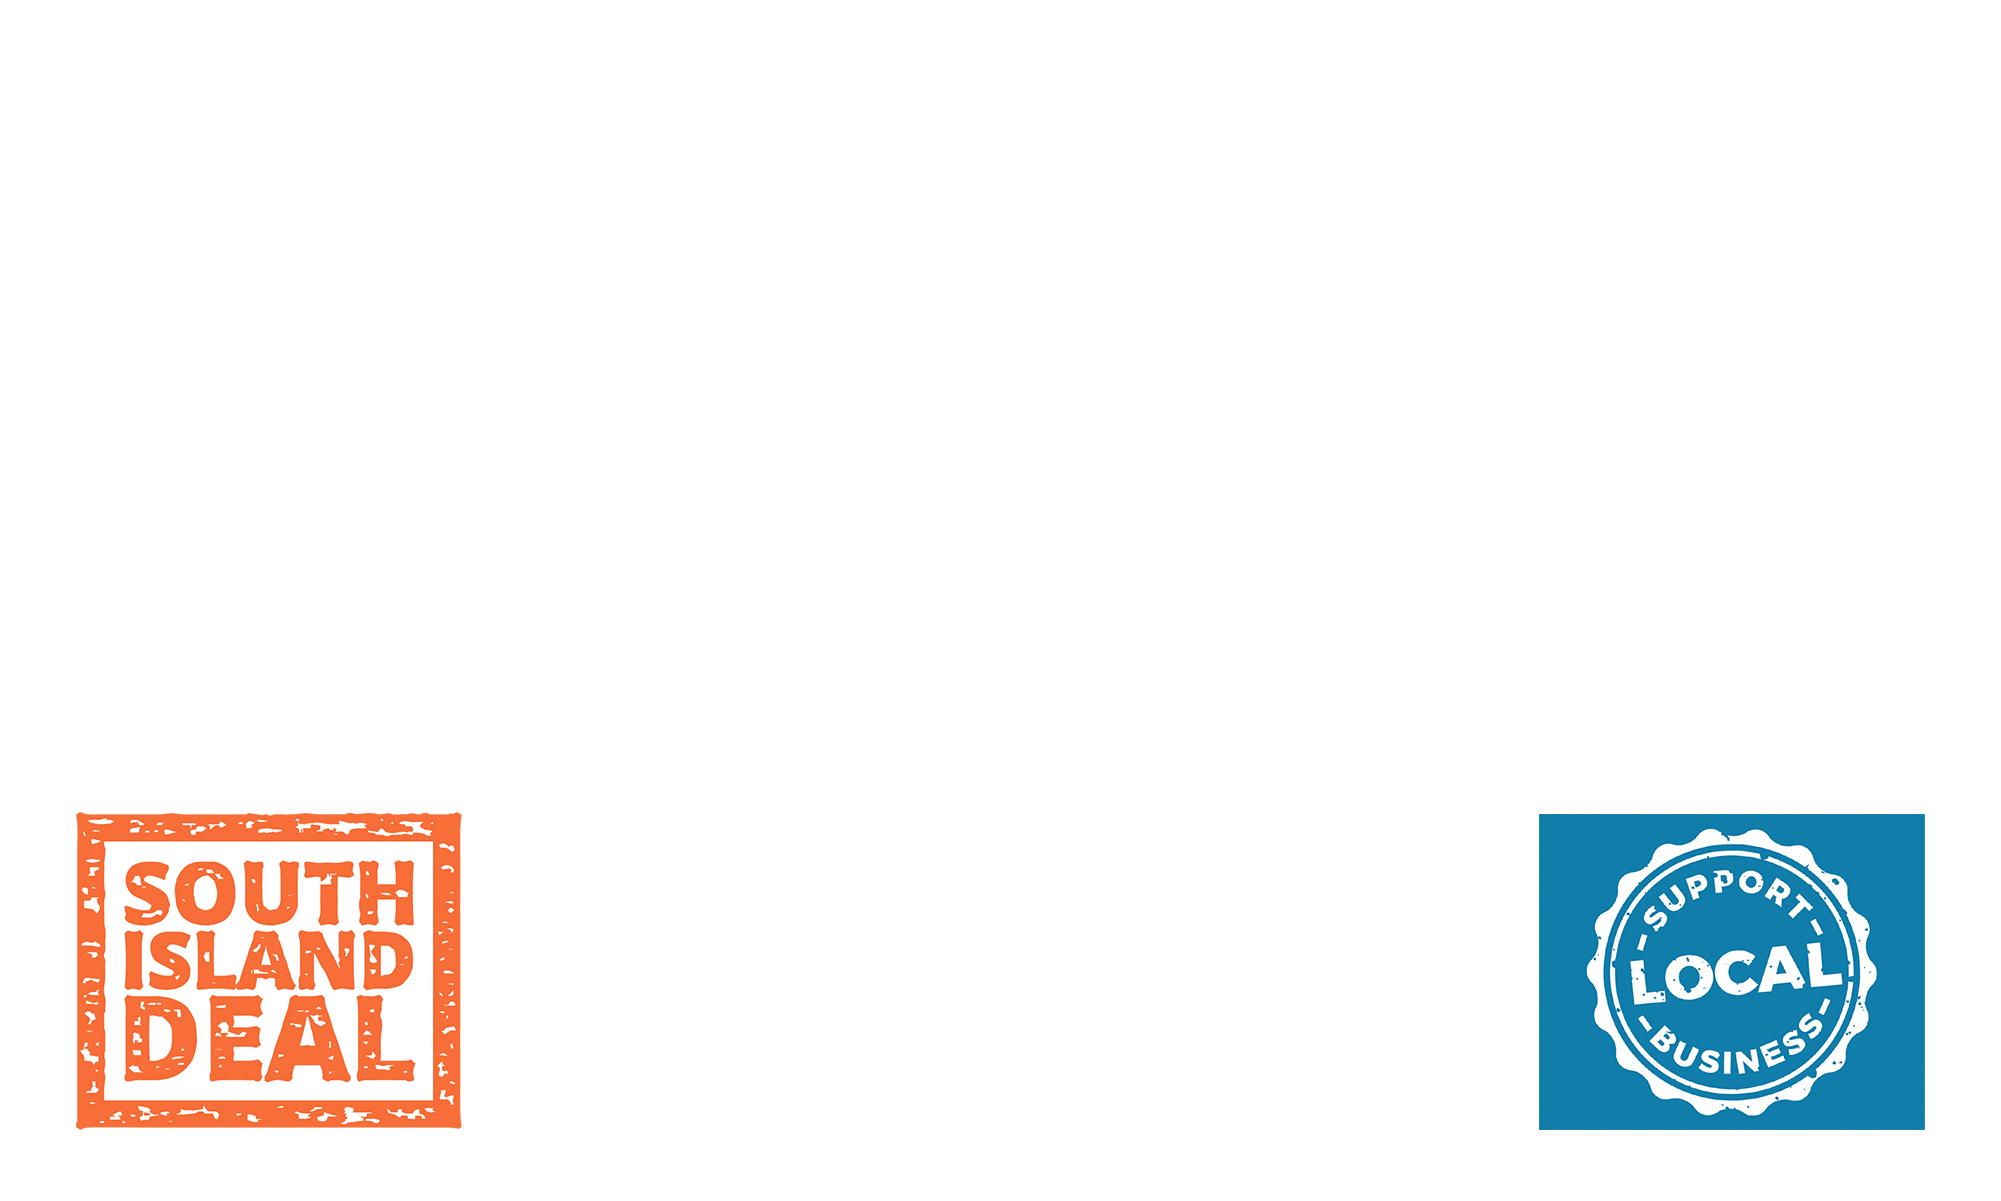 South island support logo overlay